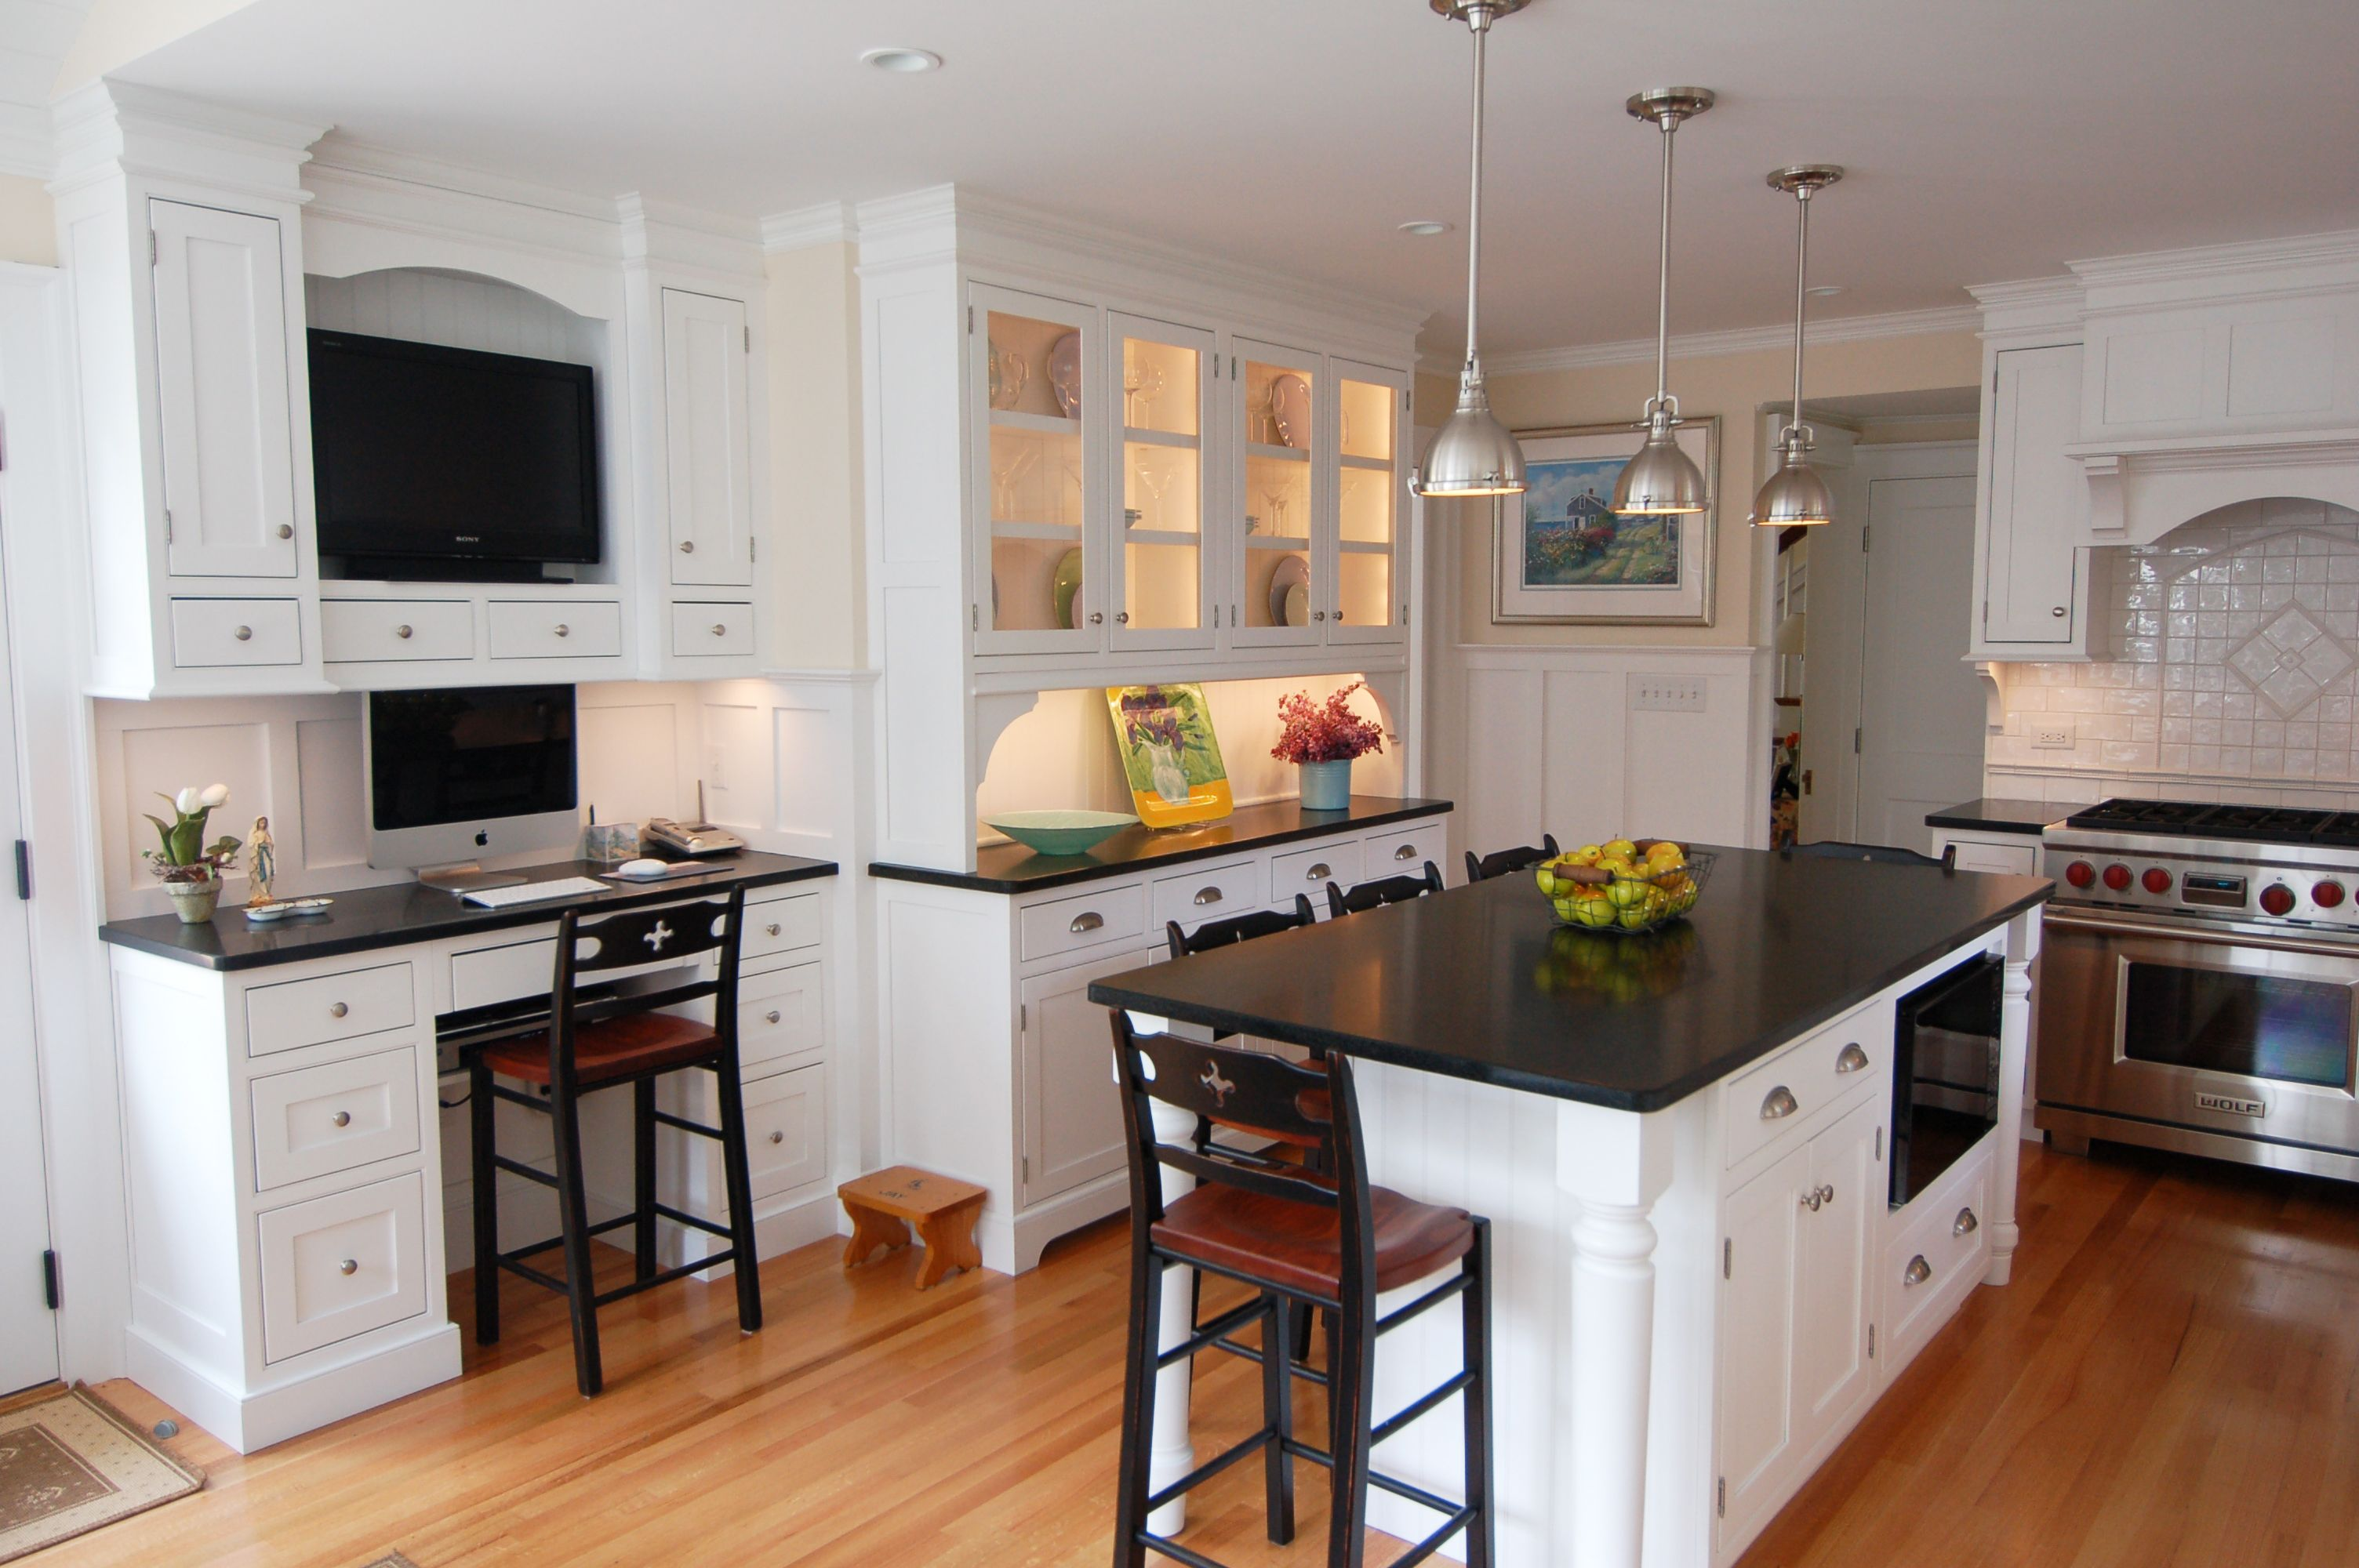 kitchen remodel @ http://kbdetails.squarespace.com/kitchen-bath ...